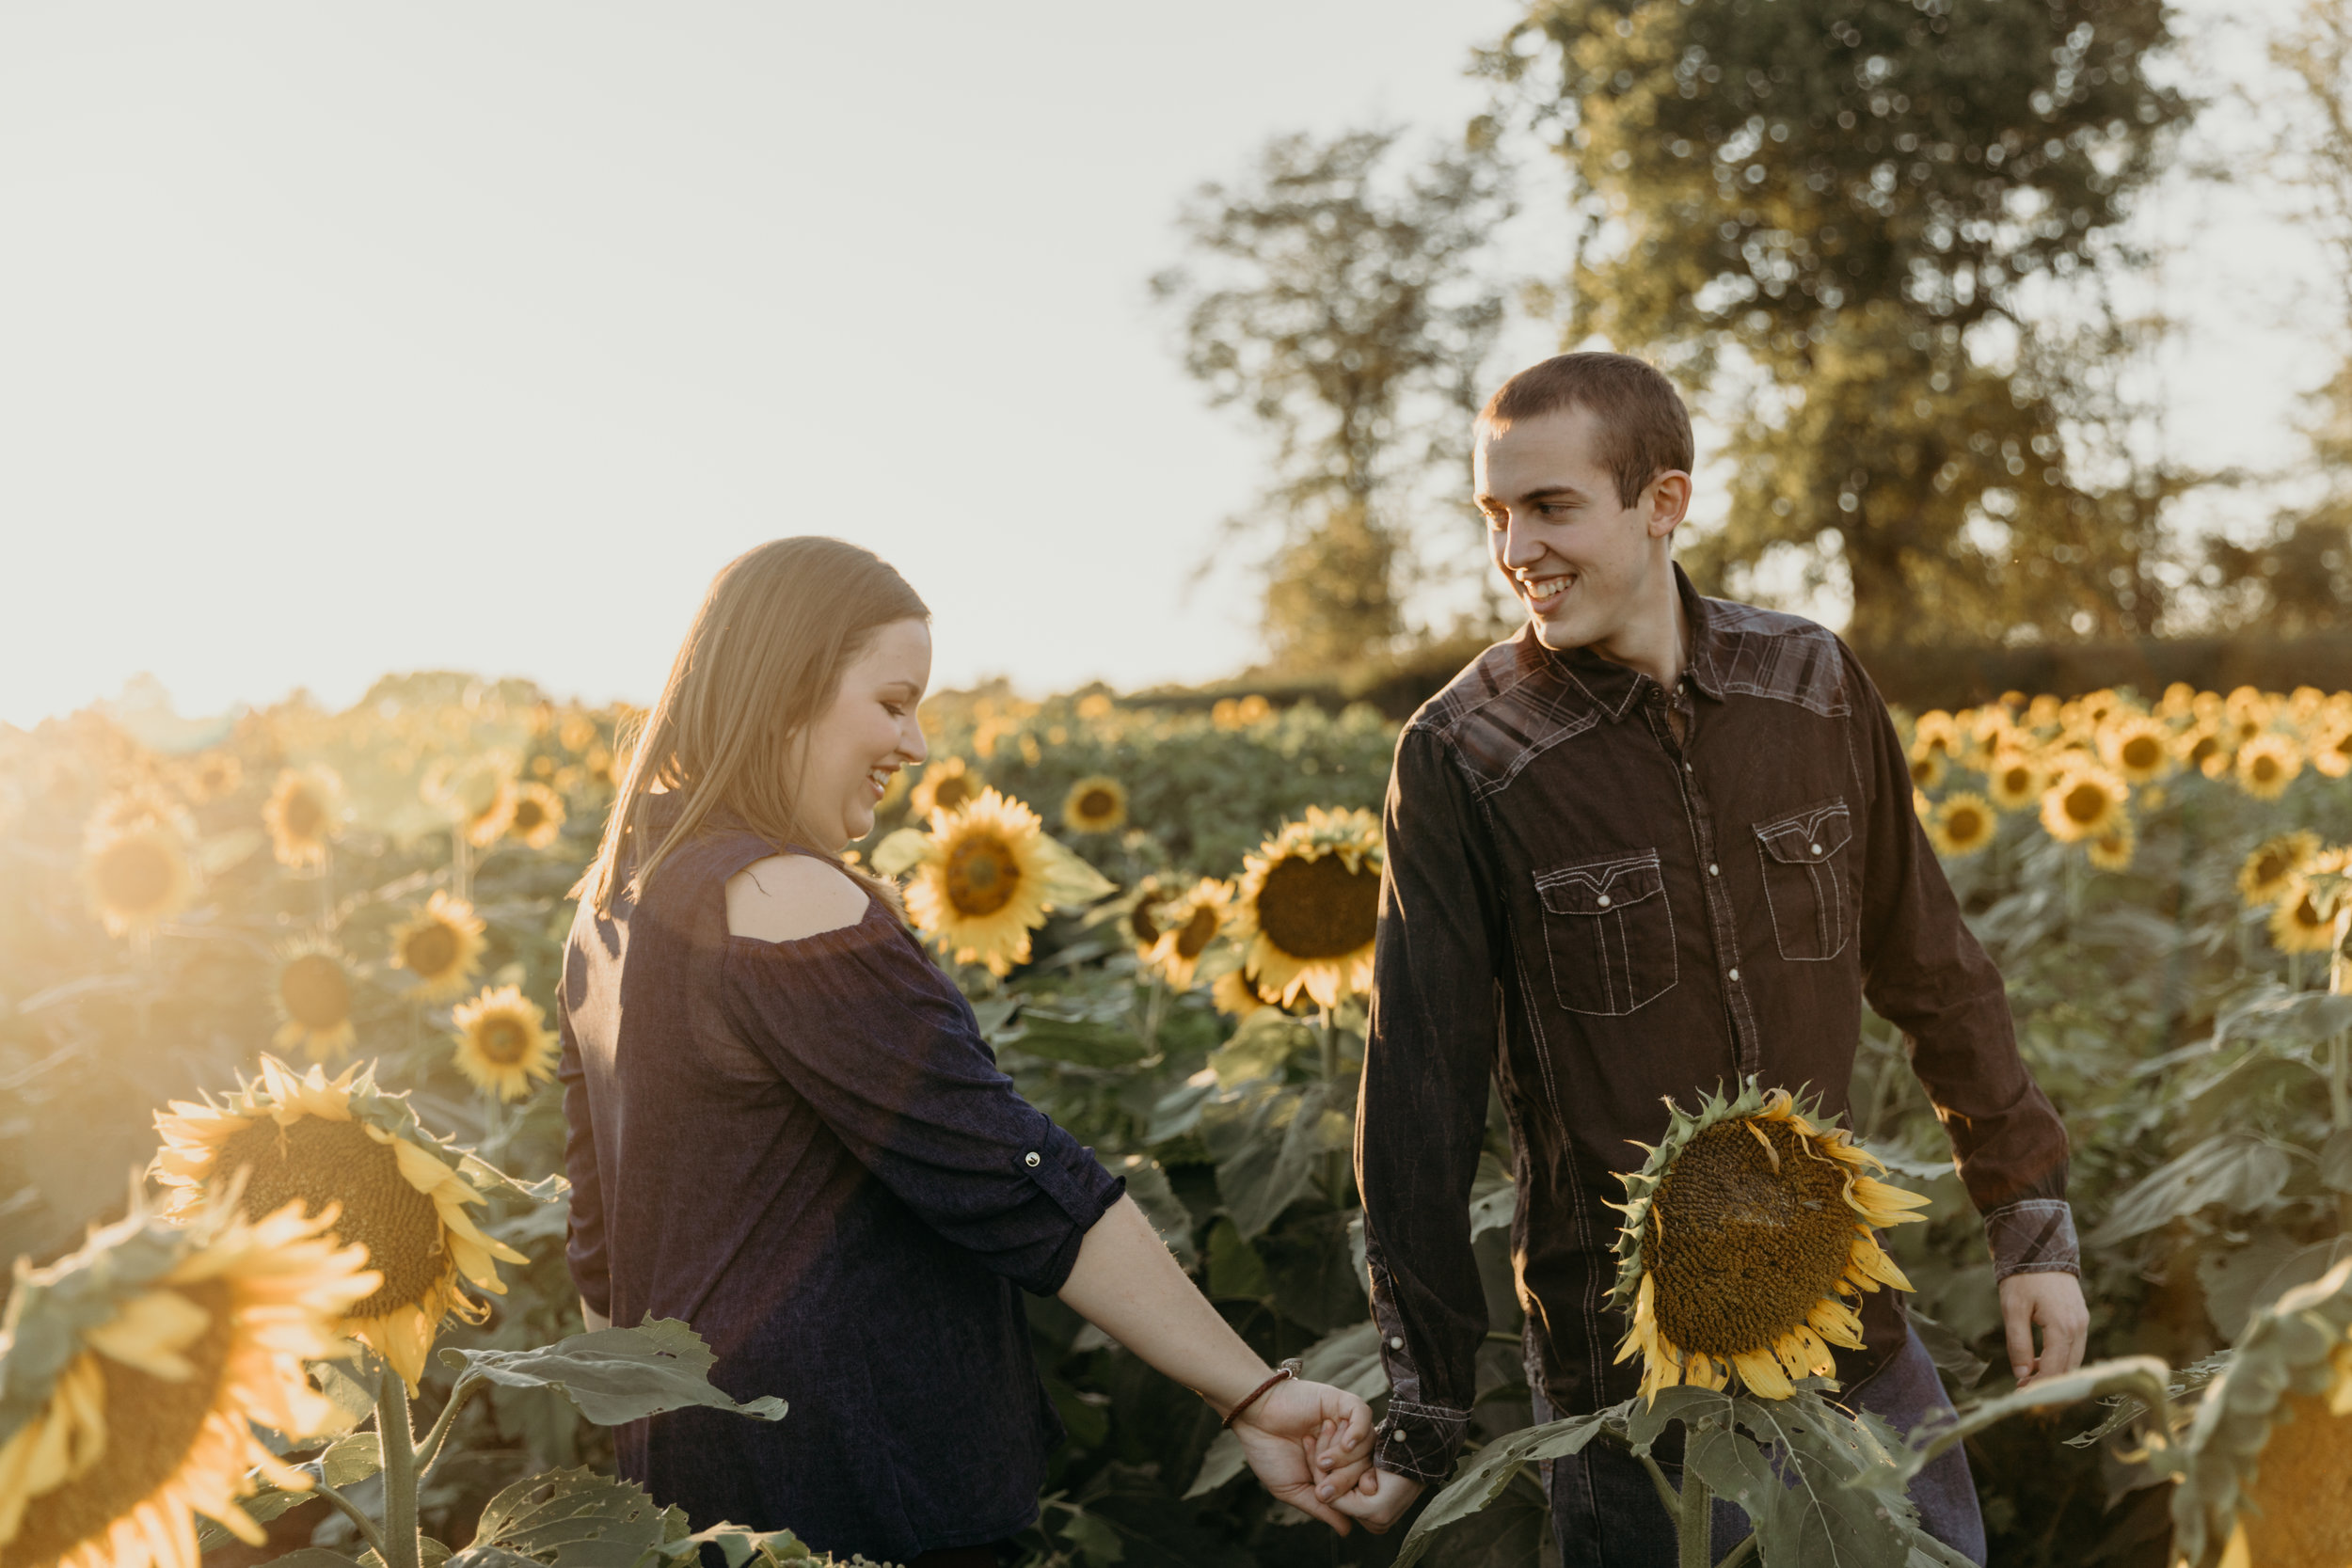 Addison & Cody Sunflower Mini Session-17.jpg